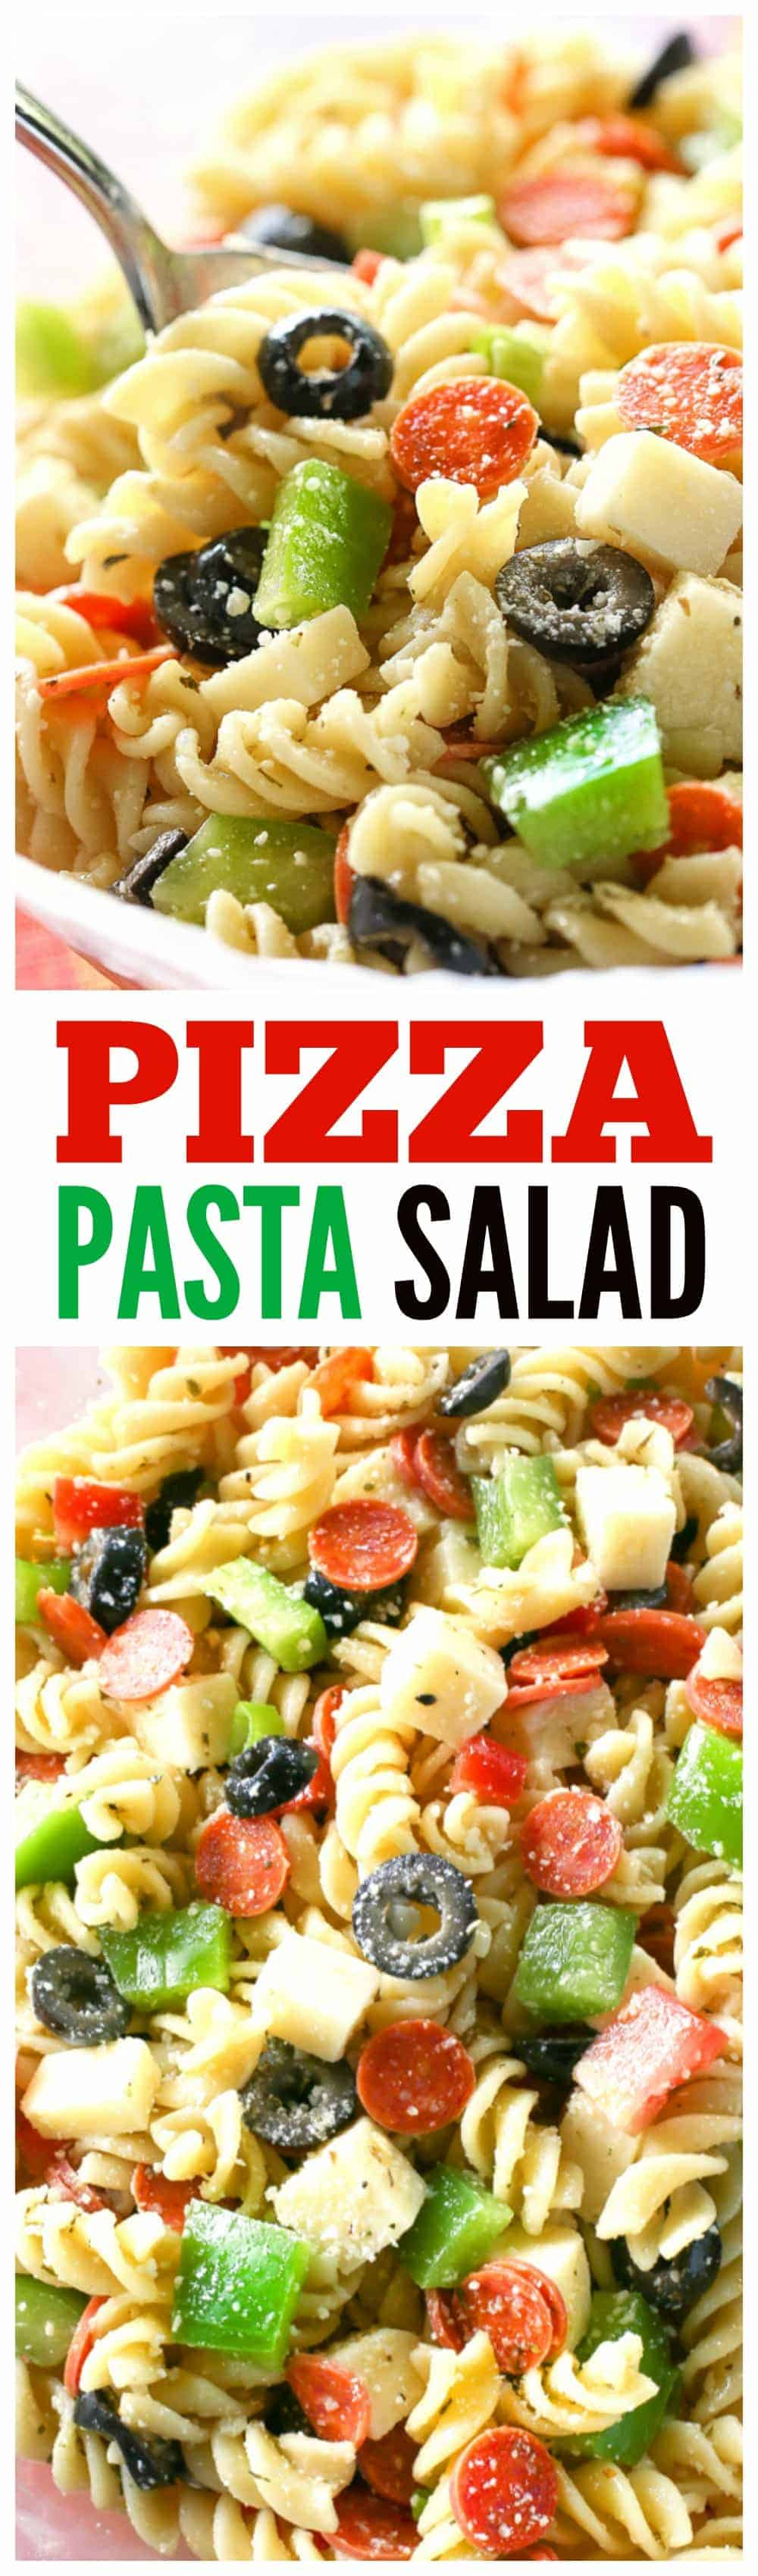 Pizza Pasta Salad has all the flavors of a delicious pizza in a pasta salad. Mini pepperonis, olives, green bell pepper, cubes of cheese, tomato - all tossed in a vinaigrette. A potluck favorite! #pizza #pasta #salad #potluck #bbq #sidedish